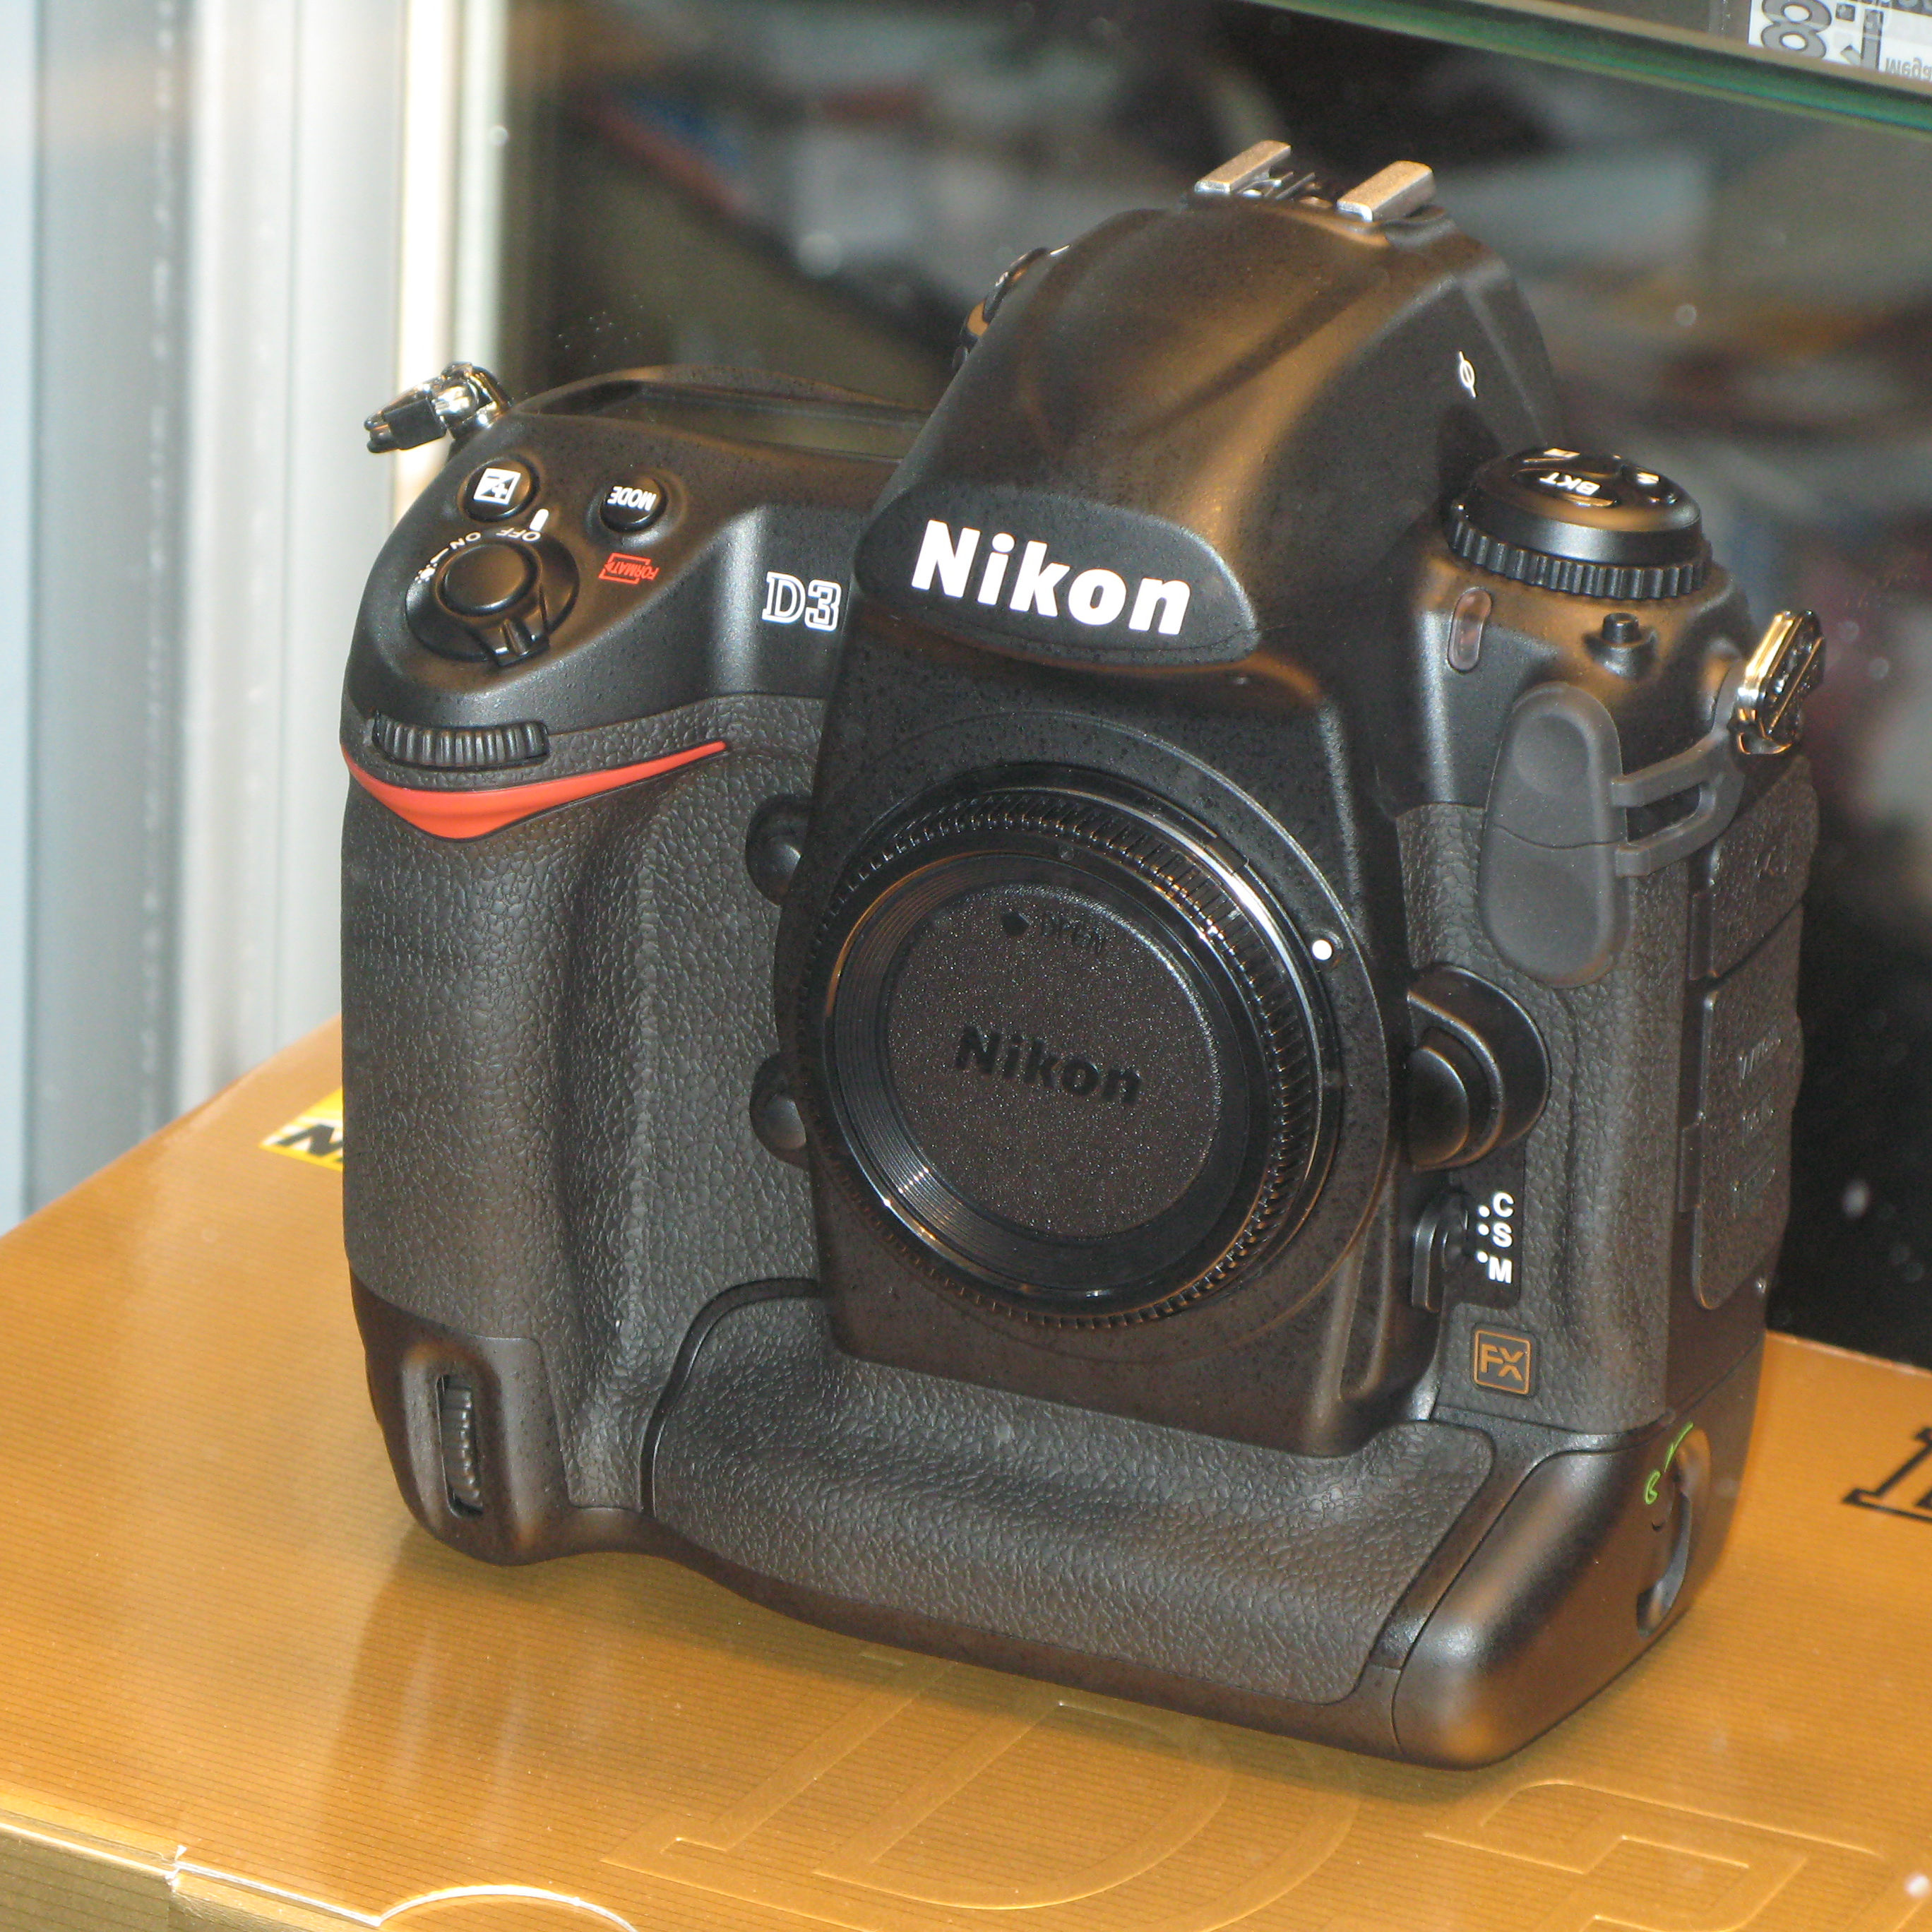 Camera Second Hand Dslr Cameras For Sale second hand dslr cameras for sale in bangalore home design nikon digital camera